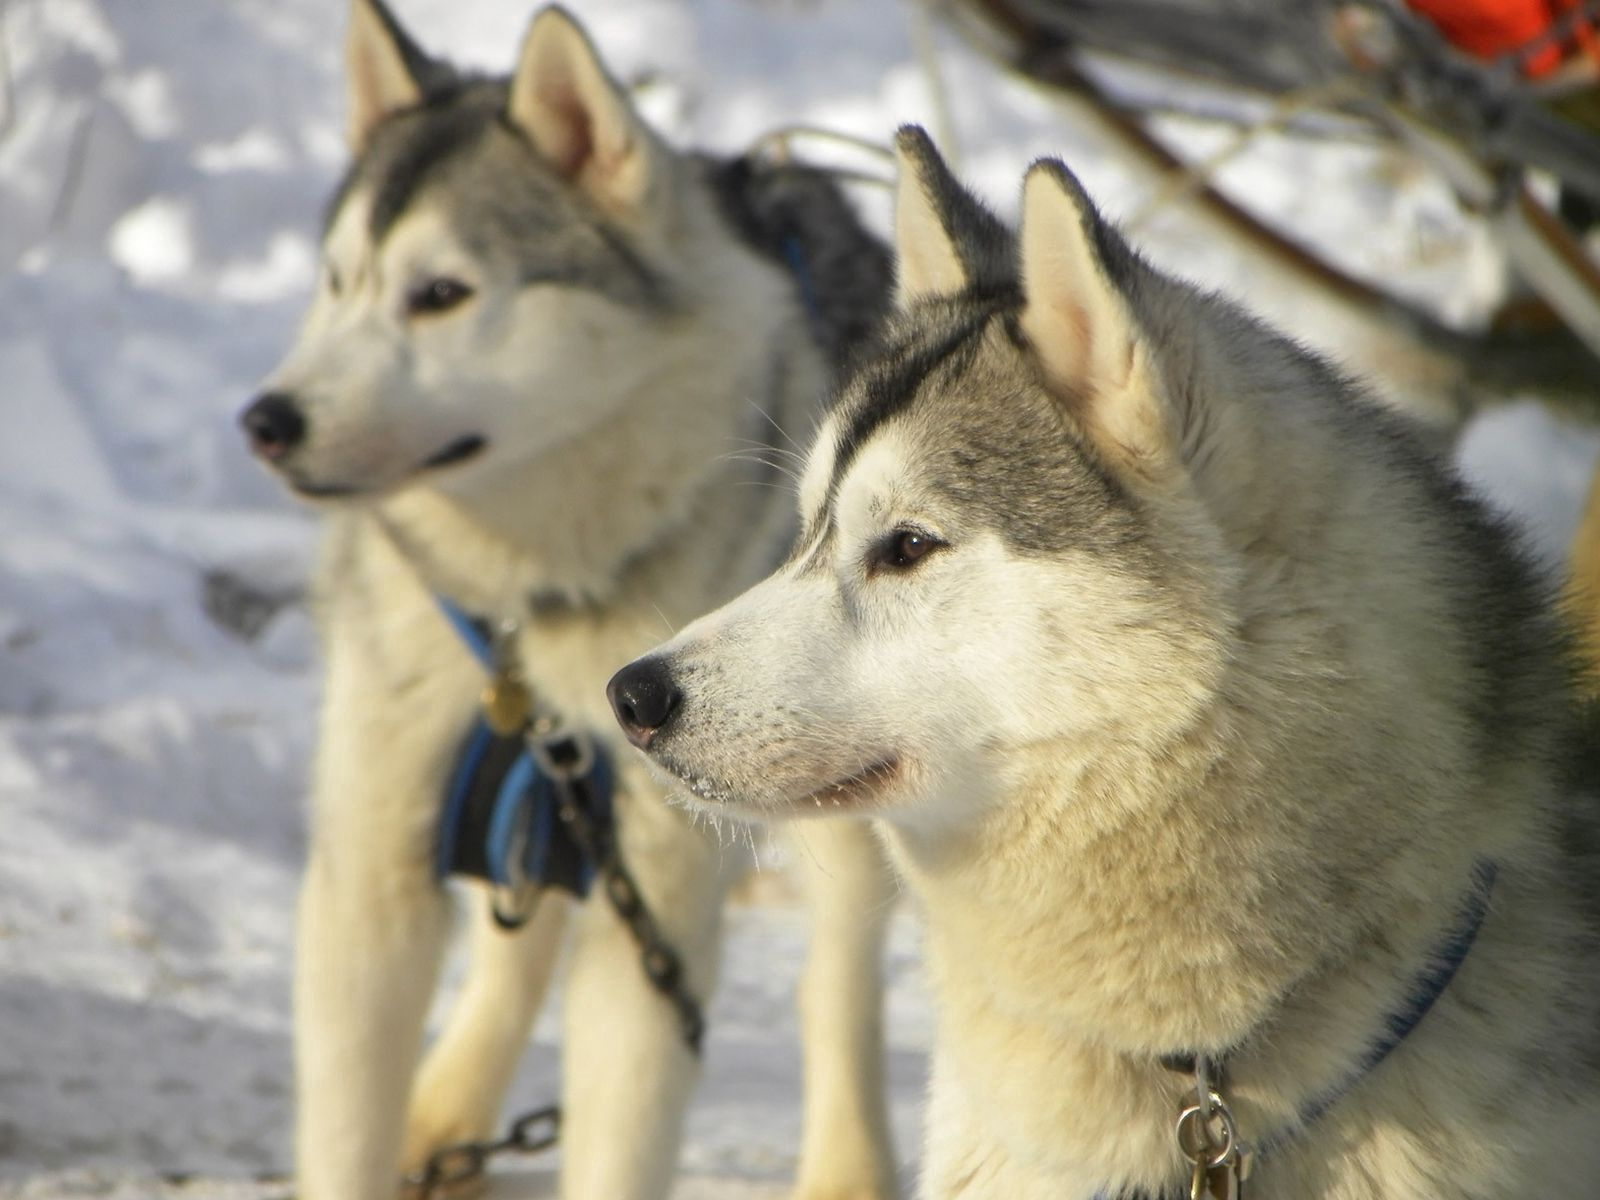 101249 download wallpaper Animals, Dog, Husky, Haska, Snow, Winter, Right, Faithful screensavers and pictures for free